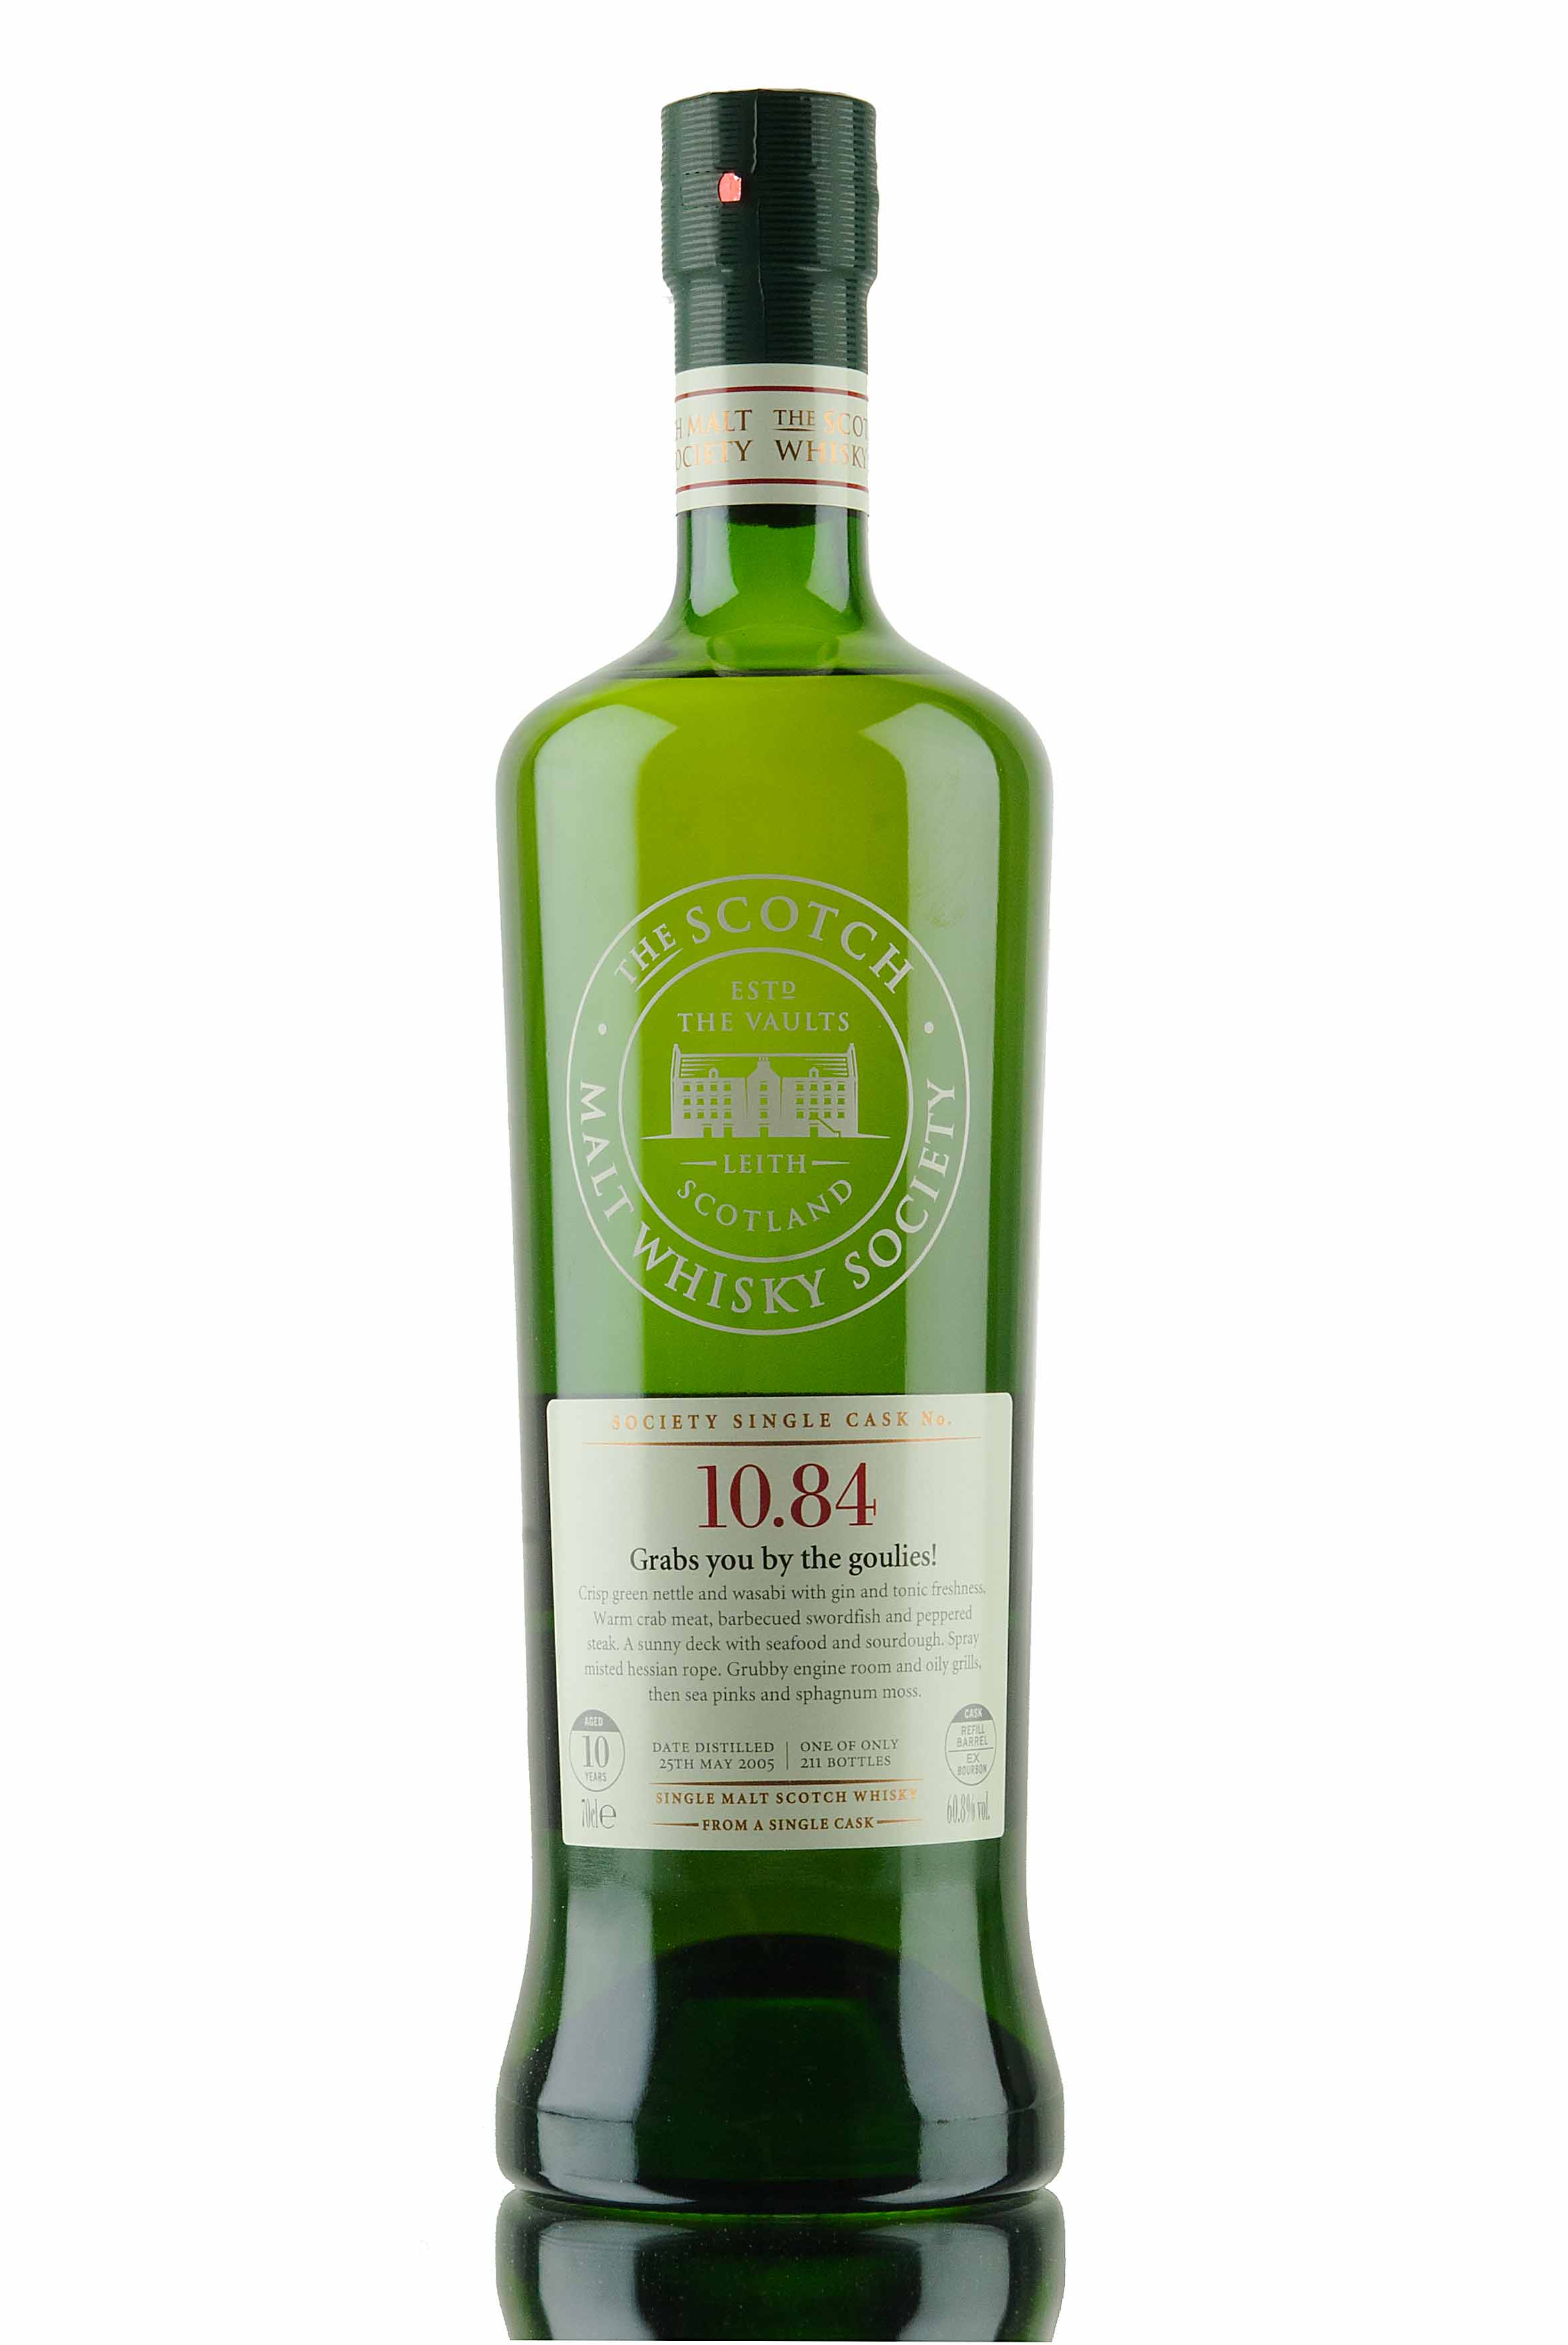 Bunnahabhain 10 Year Old - 2005 / SMWS 10.84